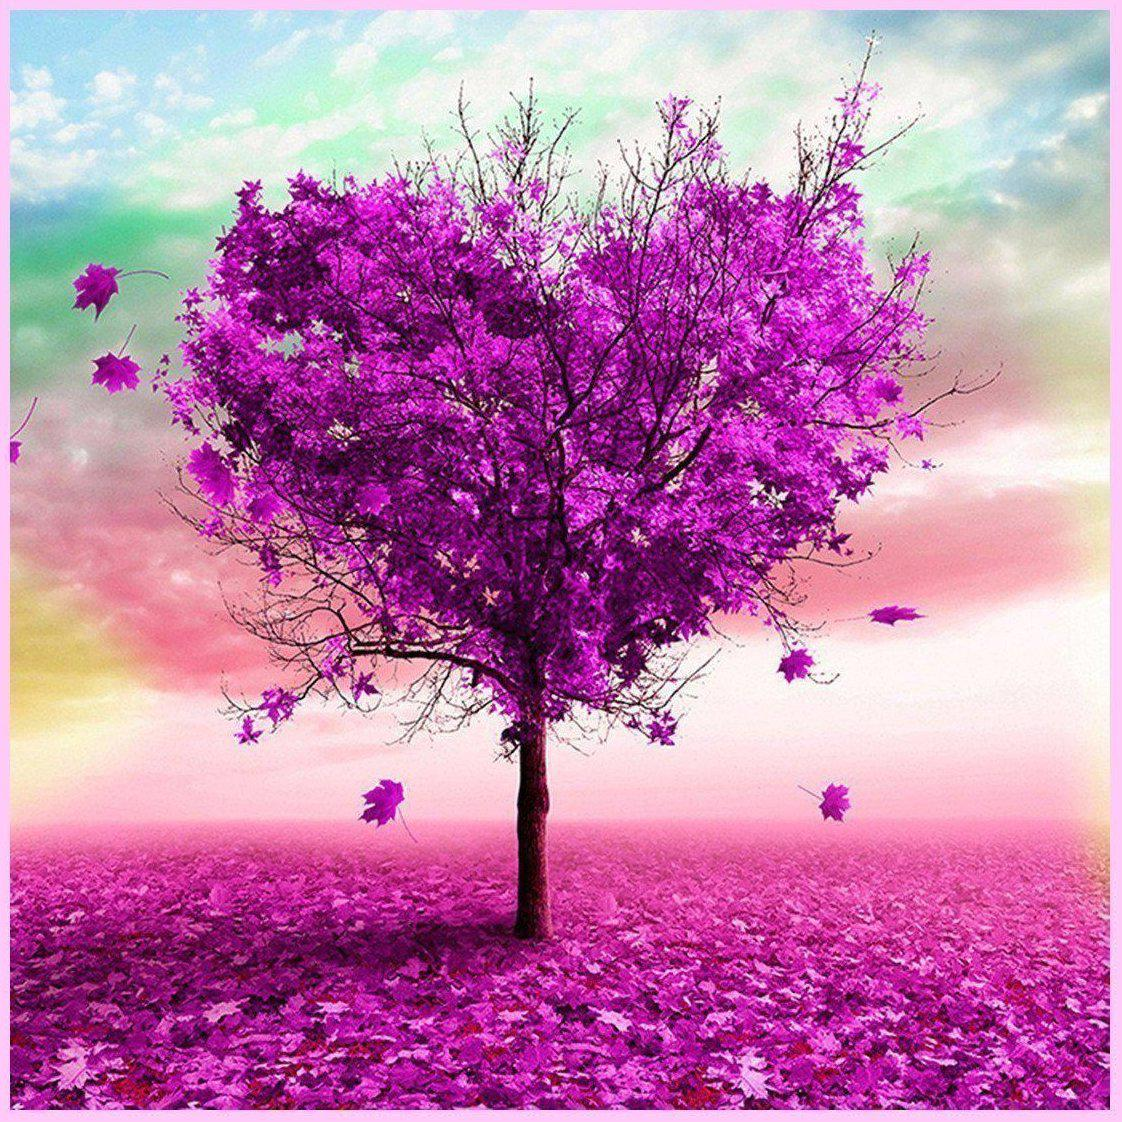 Purple Fall Leaves-Diamond Painting Kit-30x30cm (12x12 in)-Square-Heartful Diamonds